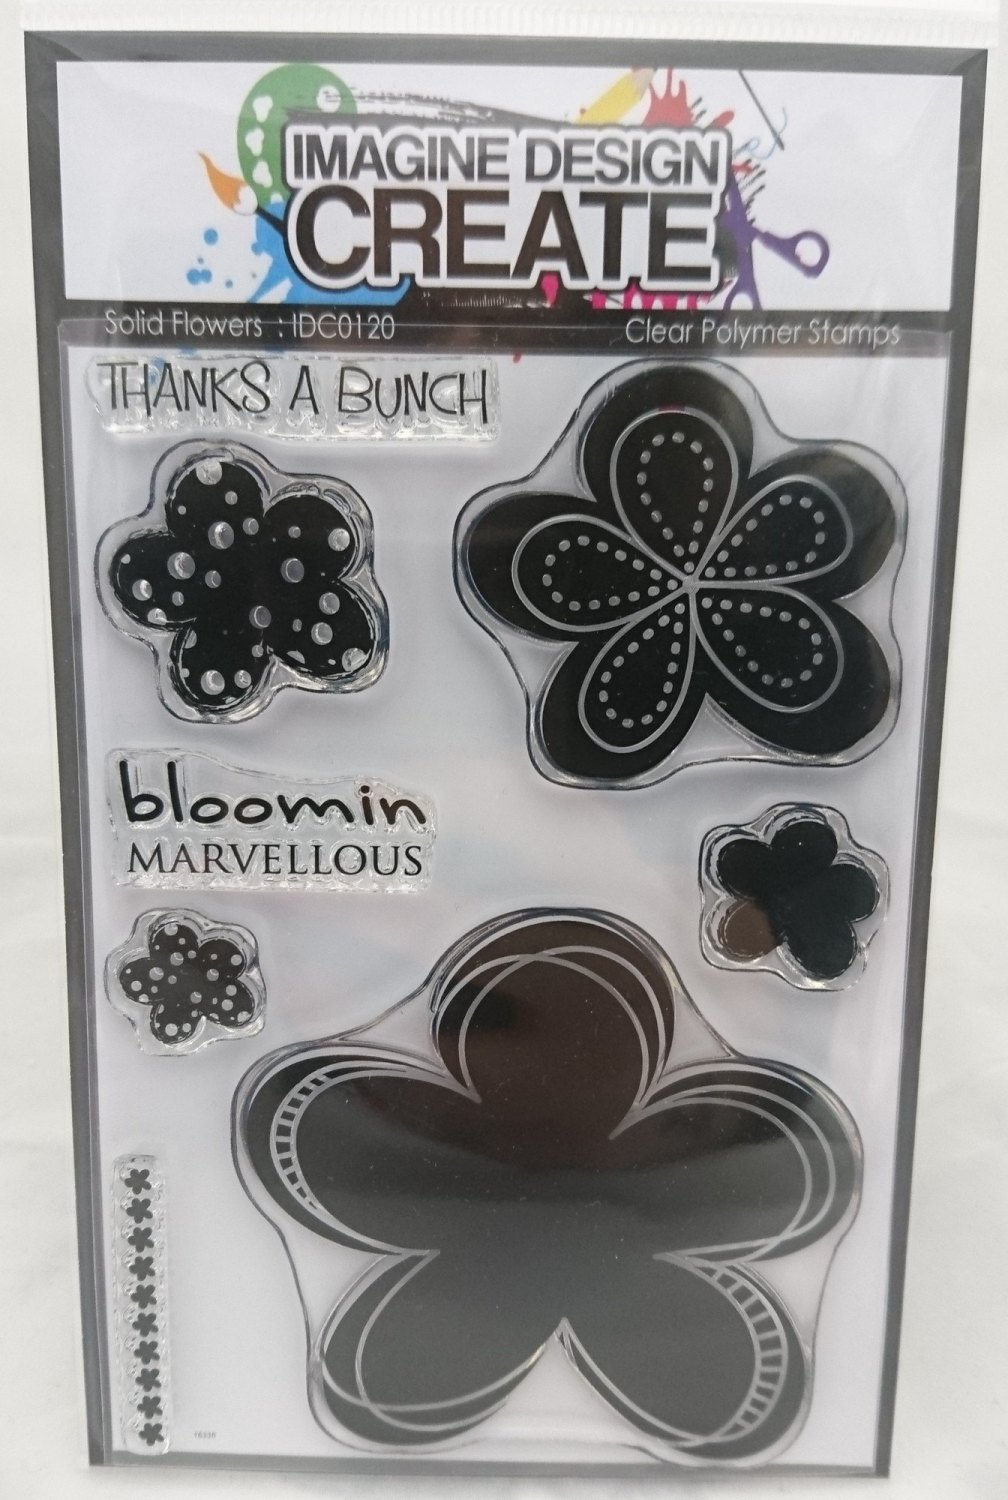 Solid Flowers : IDC0120 - A6 Stamp Set